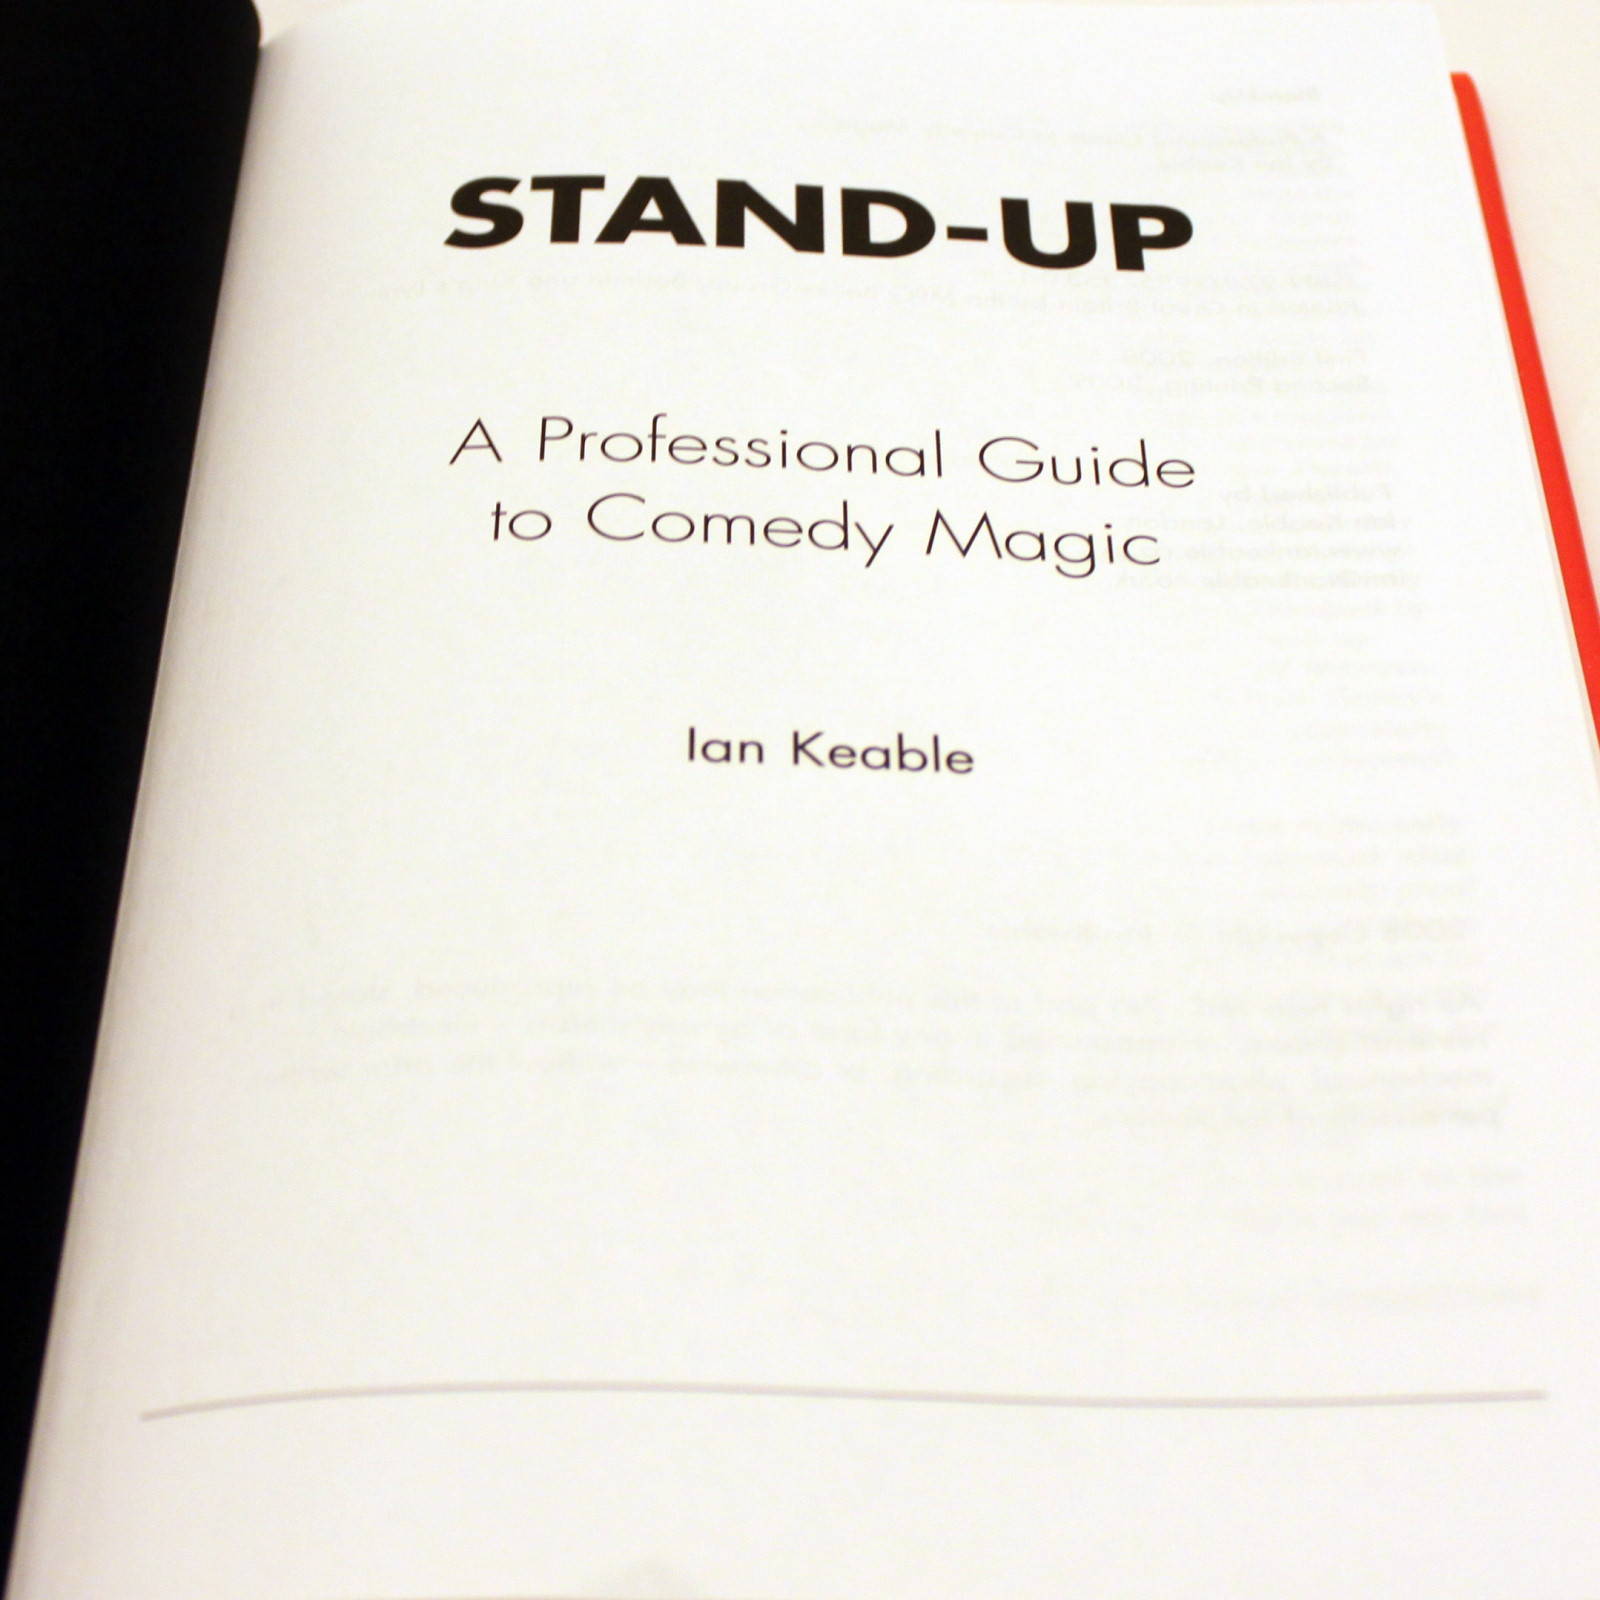 Stand Up by Ian Keable